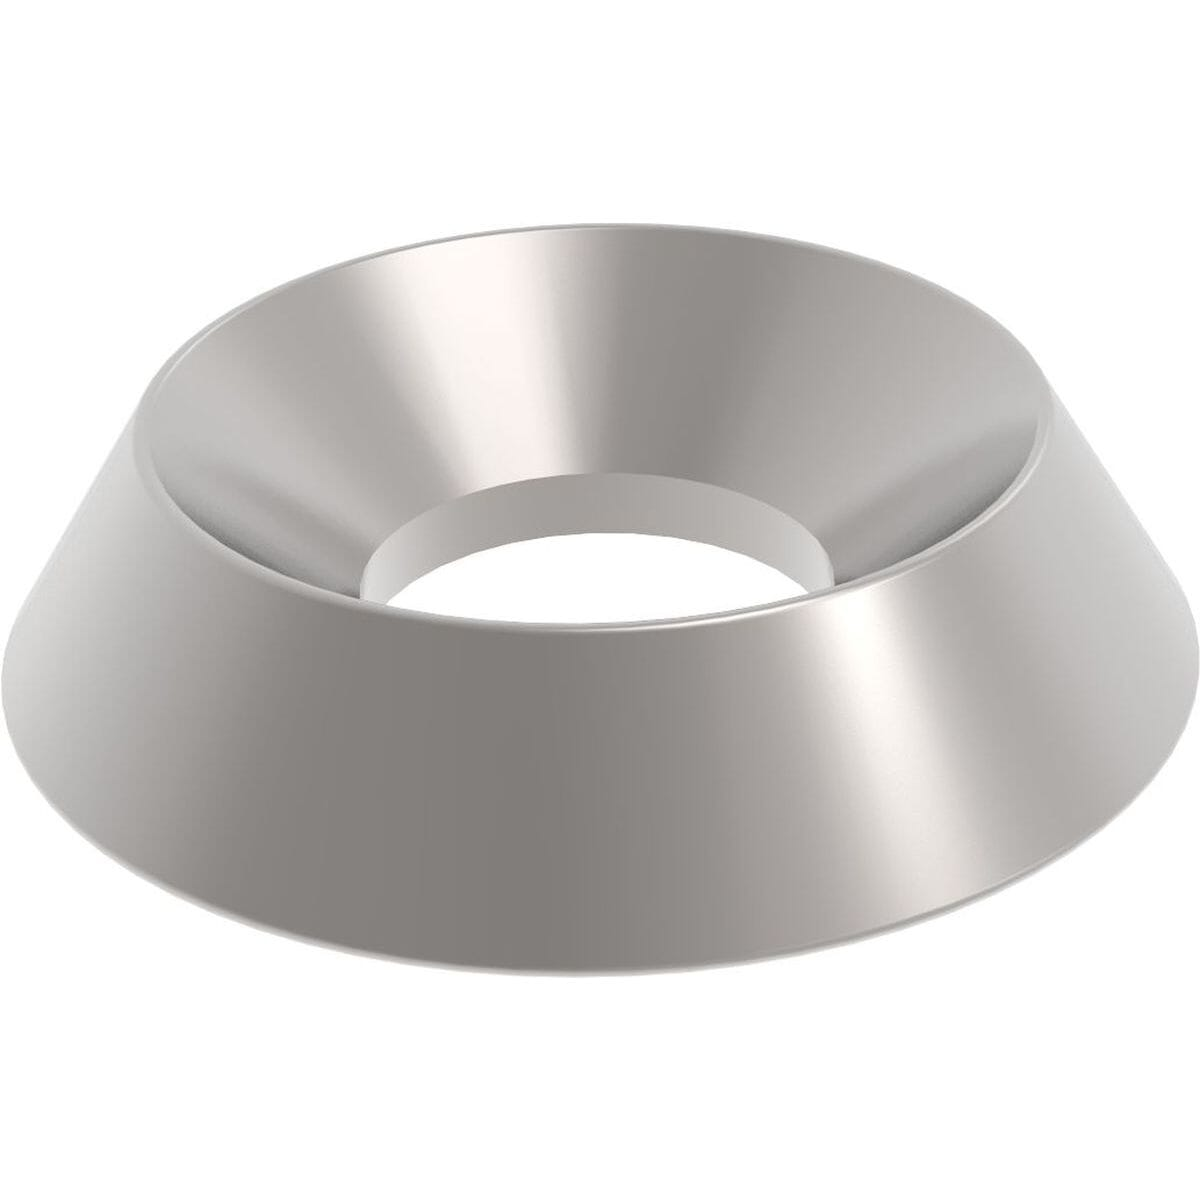 M5 Countersunk Washers (NF E 27-619) - Stainless Steel (A2)